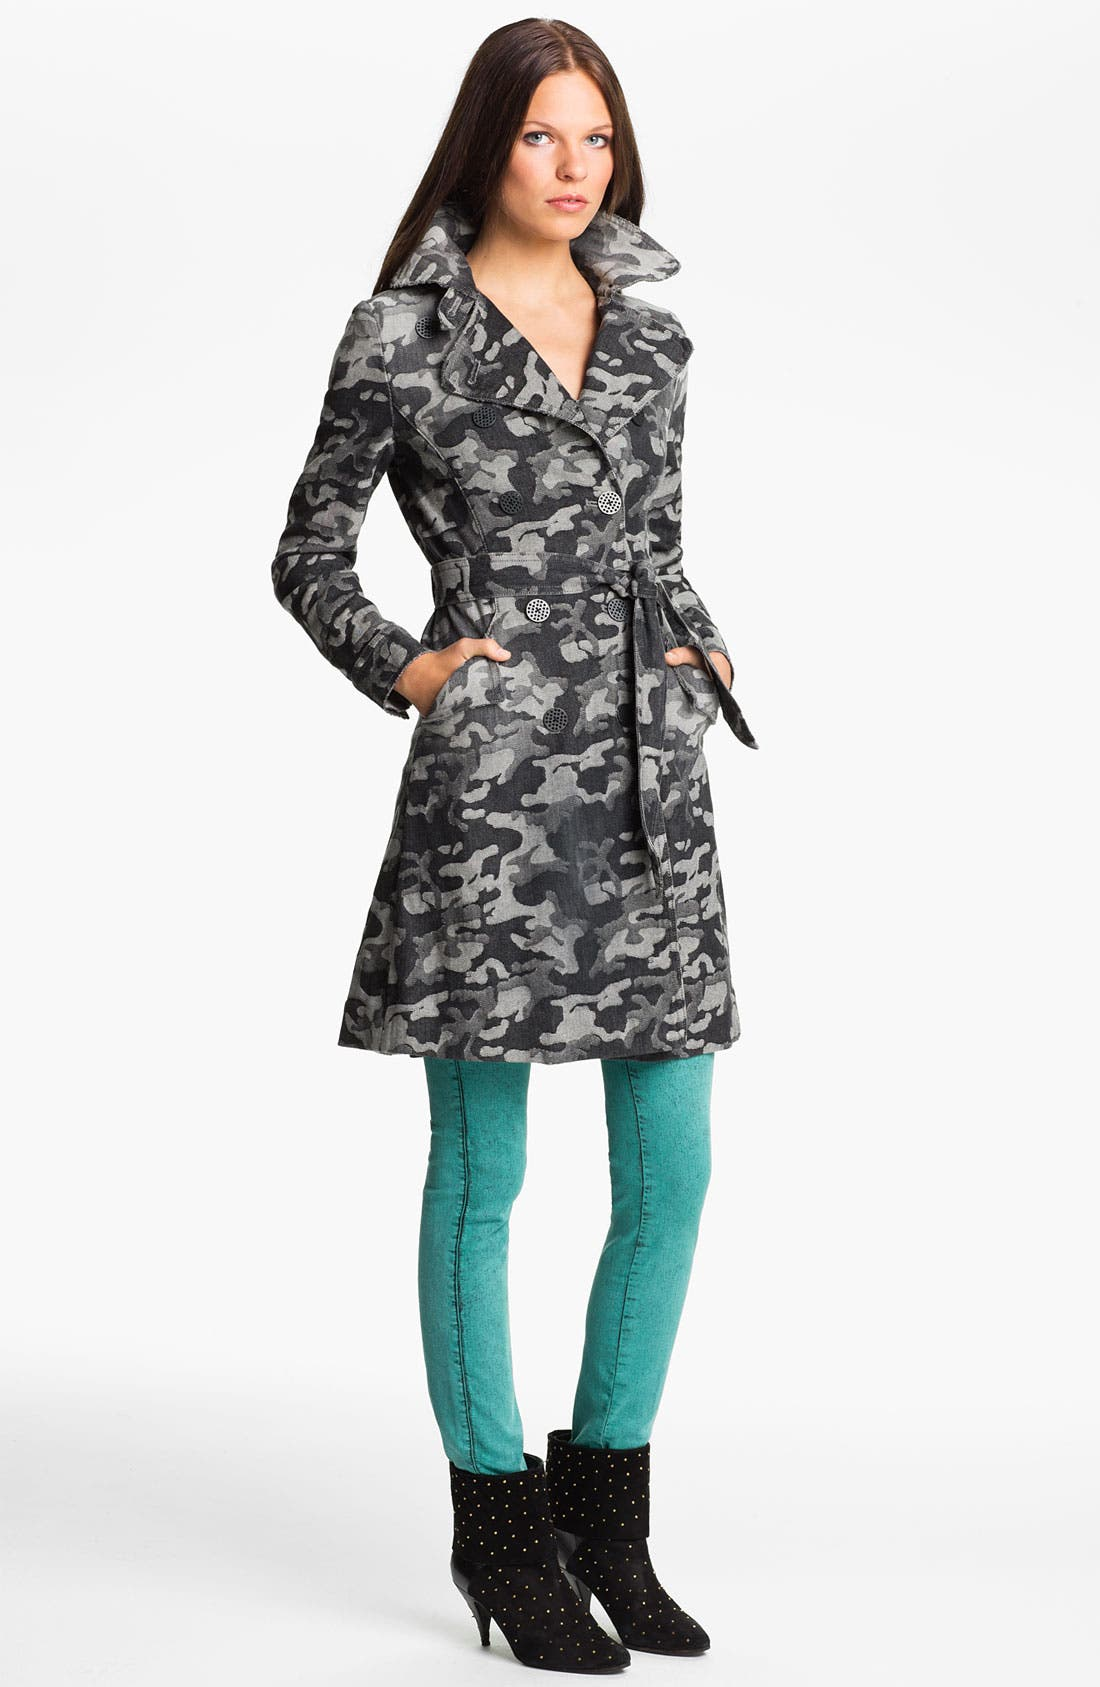 Alternate Image 1 Selected - Kelly Wearstler 'Chameleon' Camo Print Trench Coat